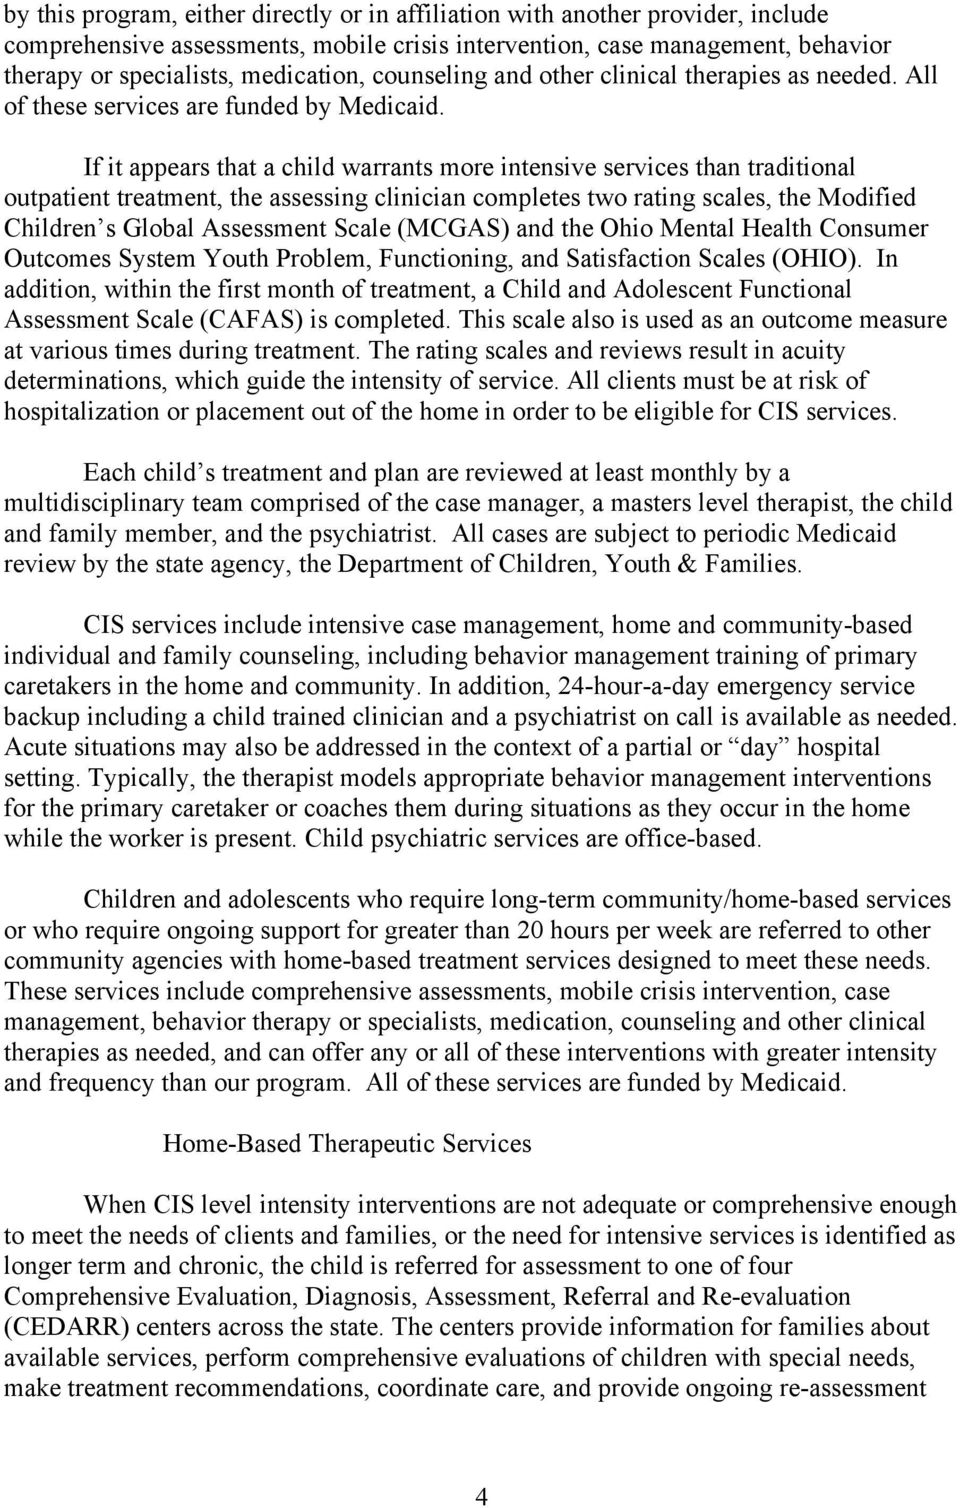 If it appears that a child warrants more intensive services than traditional outpatient treatment, the assessing clinician completes two rating scales, the Modified Children s Global Assessment Scale